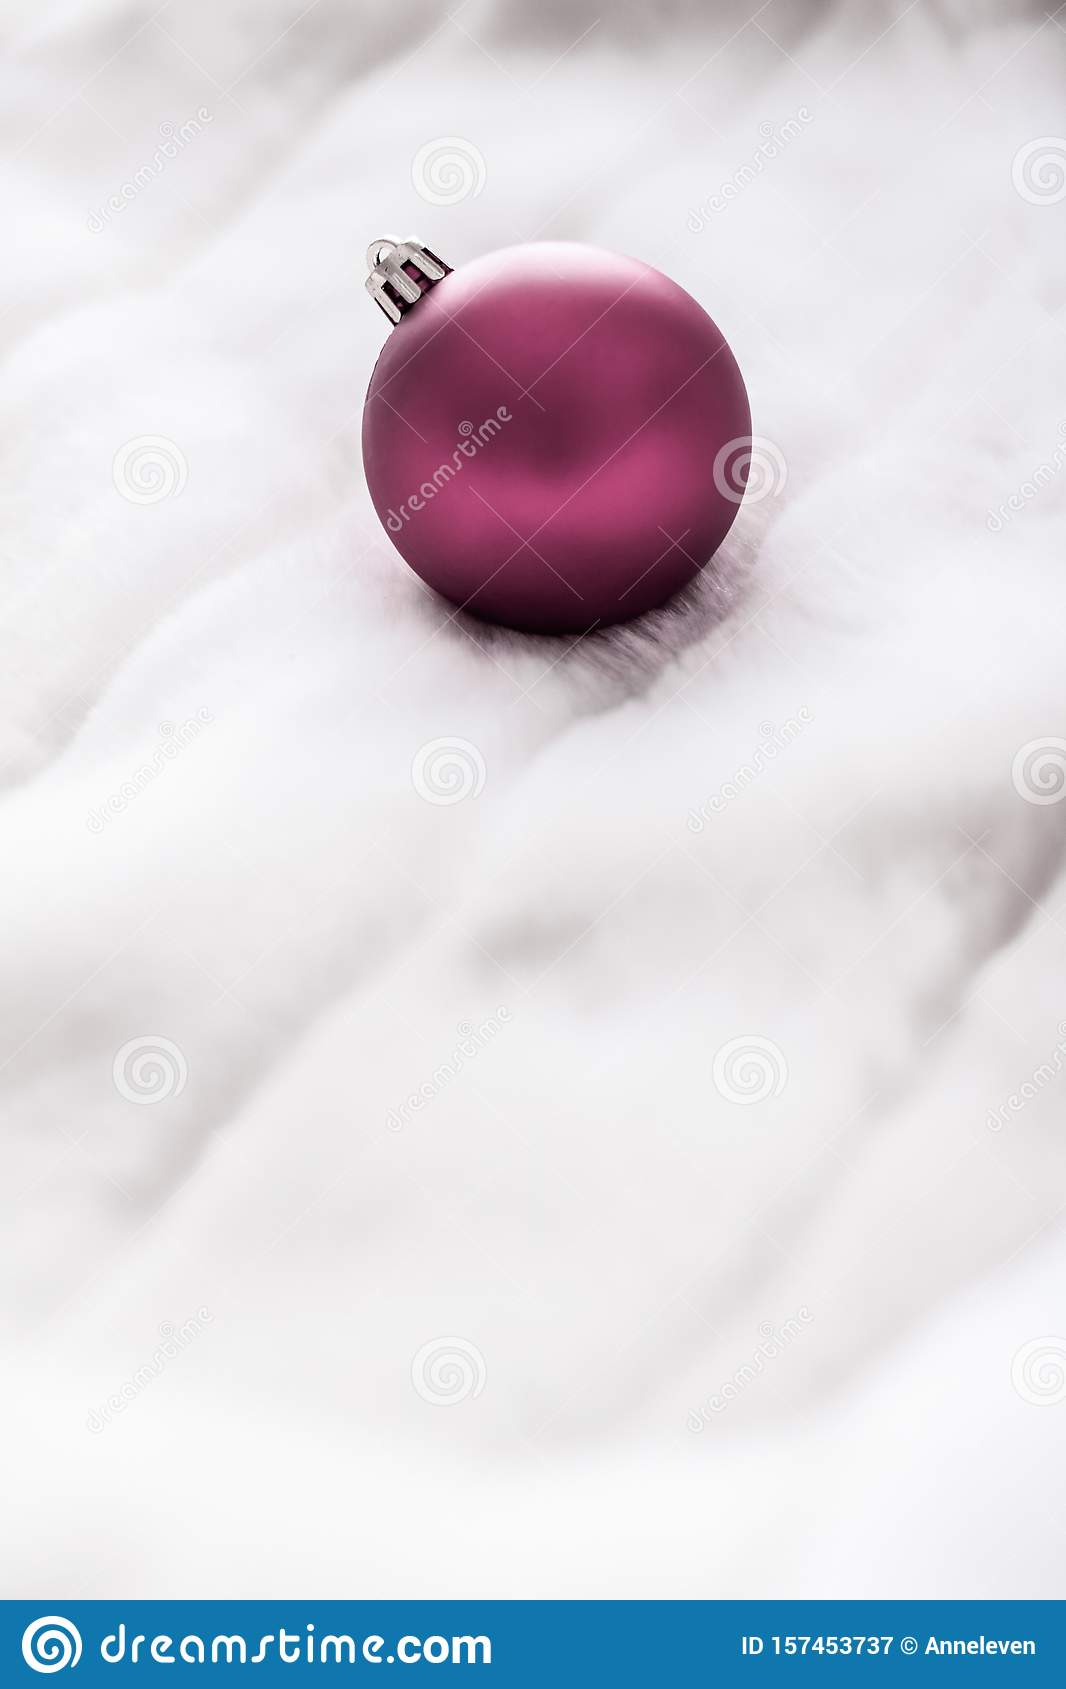 Purple Christmas baubles on white fluffy fur backdrop, luxury winter holiday design background